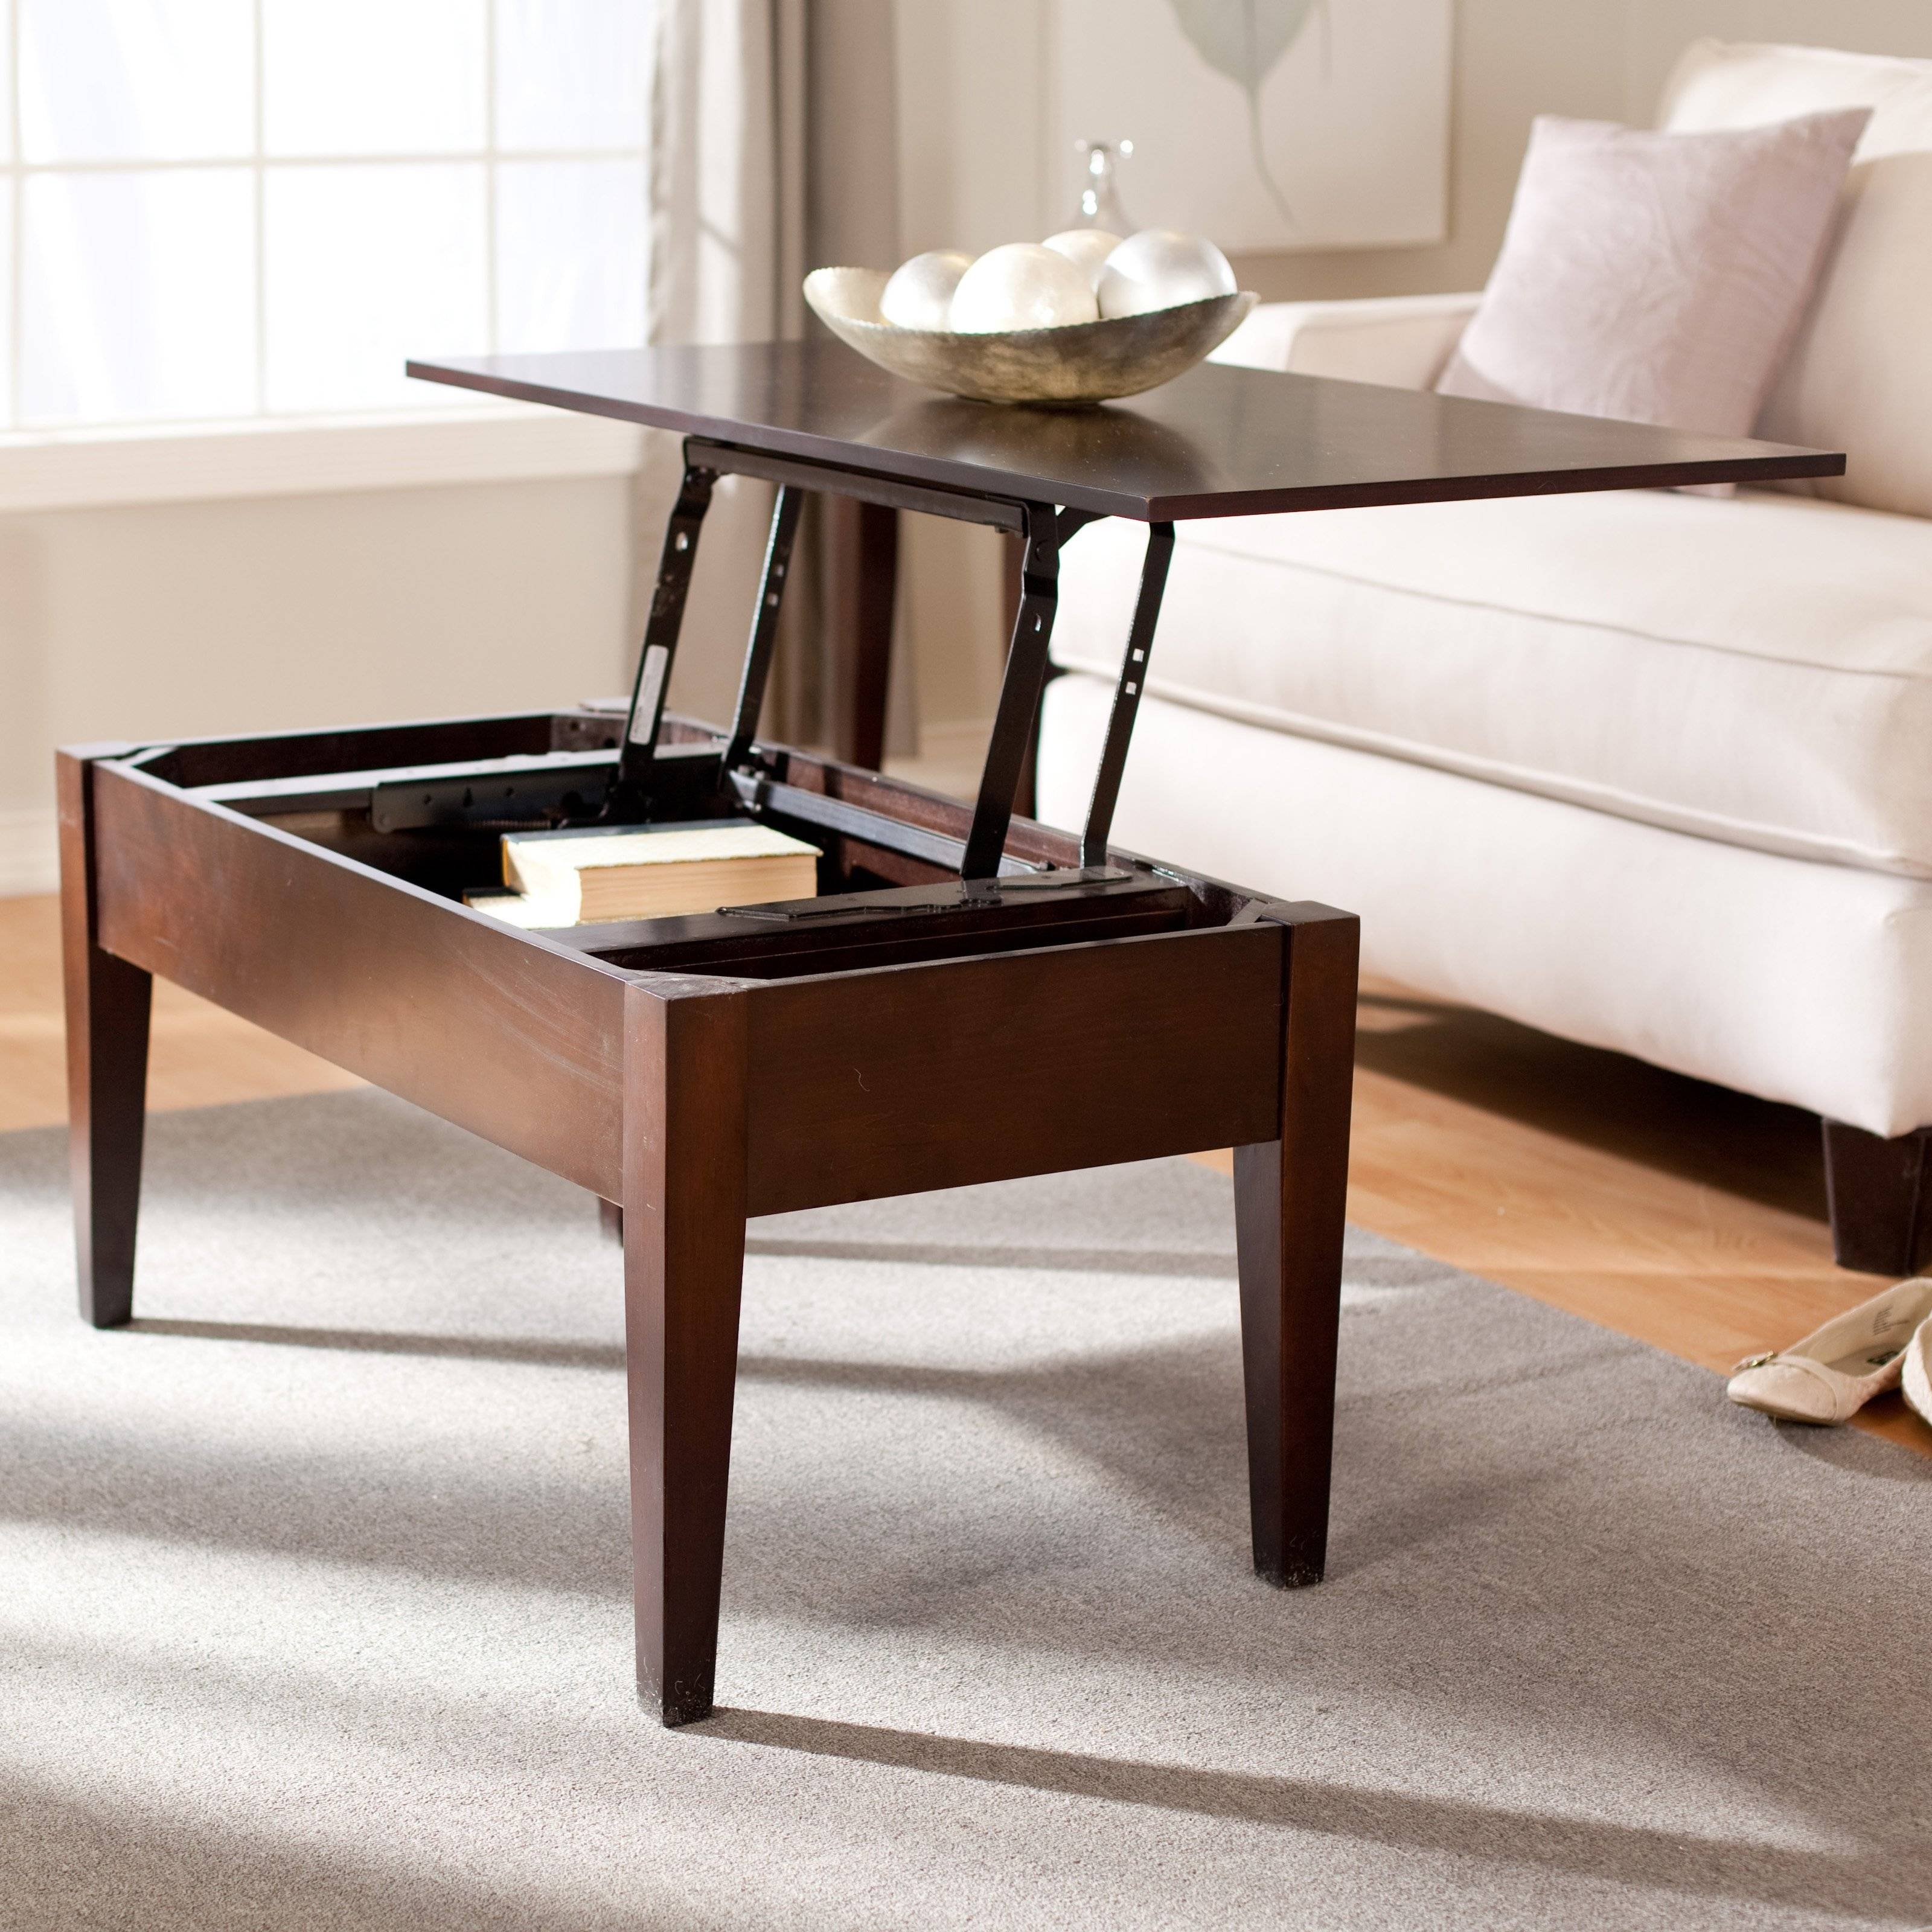 Turner Lift Top Coffee Table – Espresso | Hayneedle For Lift Coffee Tables (View 3 of 30)